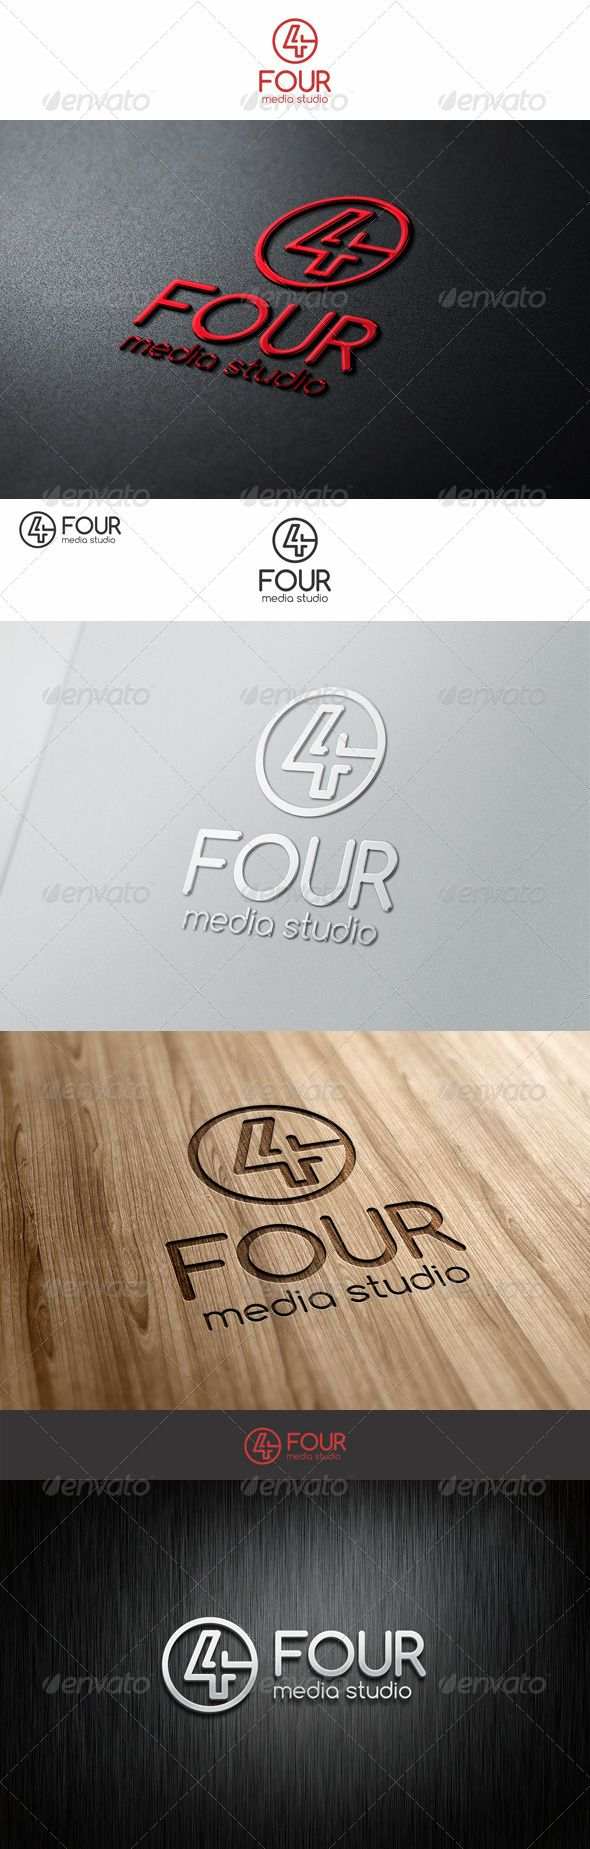 Four Number  Logo Design Template Vector #logotype Download it here: http://graphicriver.net/item/four-logo-number/7564218?s_rank=5?ref=nesto